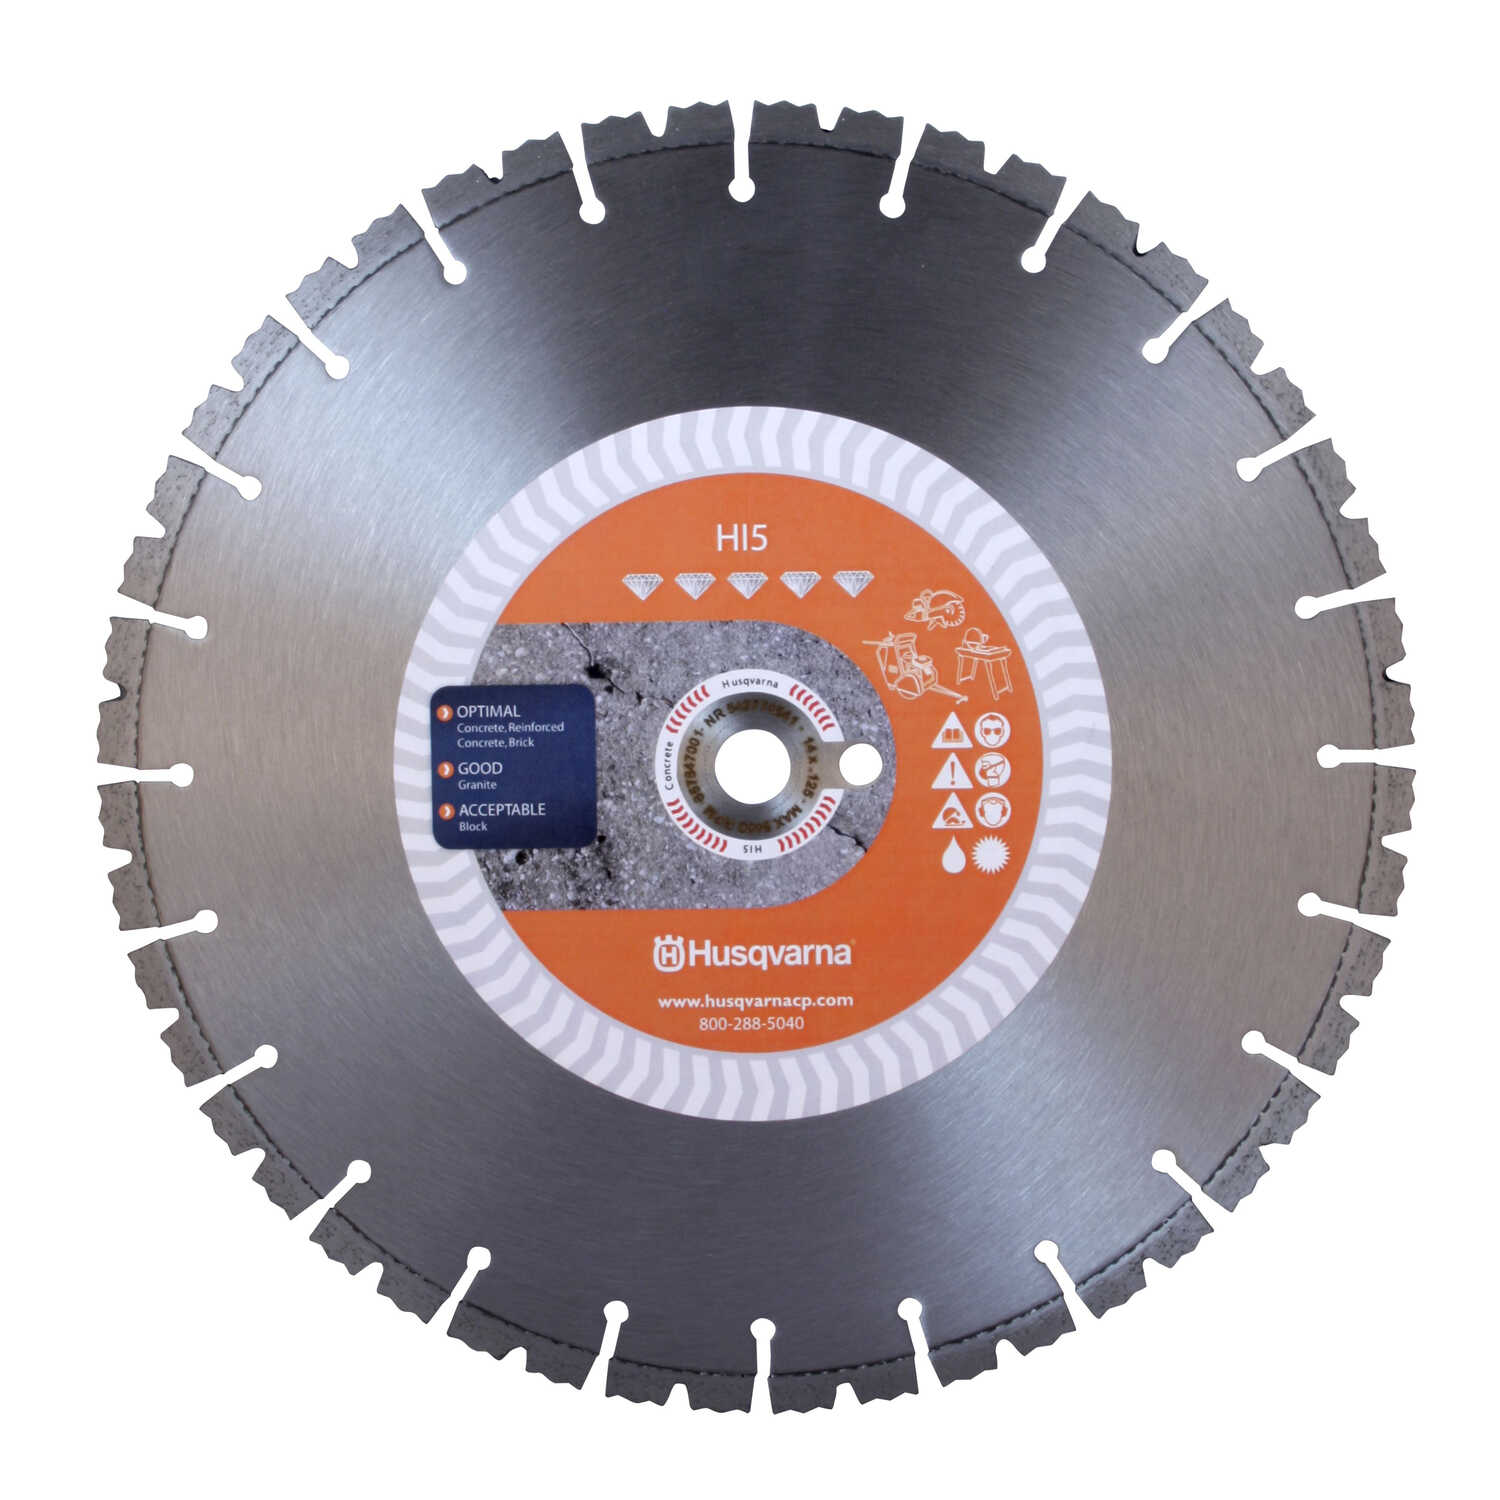 Husqvarna  14  0.125 in. thick  HI5  Segmented Rim Saw Blade  1 in./20 mm  24 teeth 1 pk Diamond